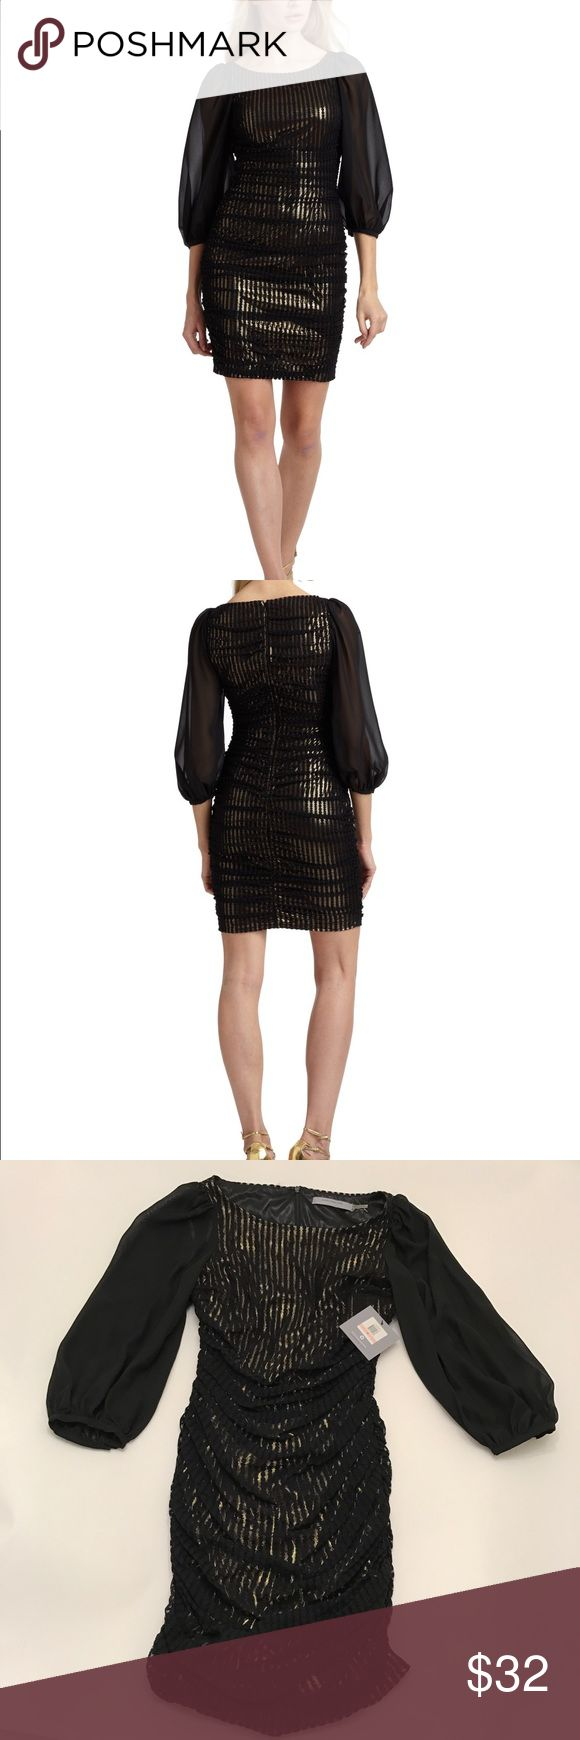 NWT Andrew Marc New York Gold and Black Dress / 10 NWT Andrew Marc New York Gold and Black Dress / size 10 Andrew Marc Dresses Mini